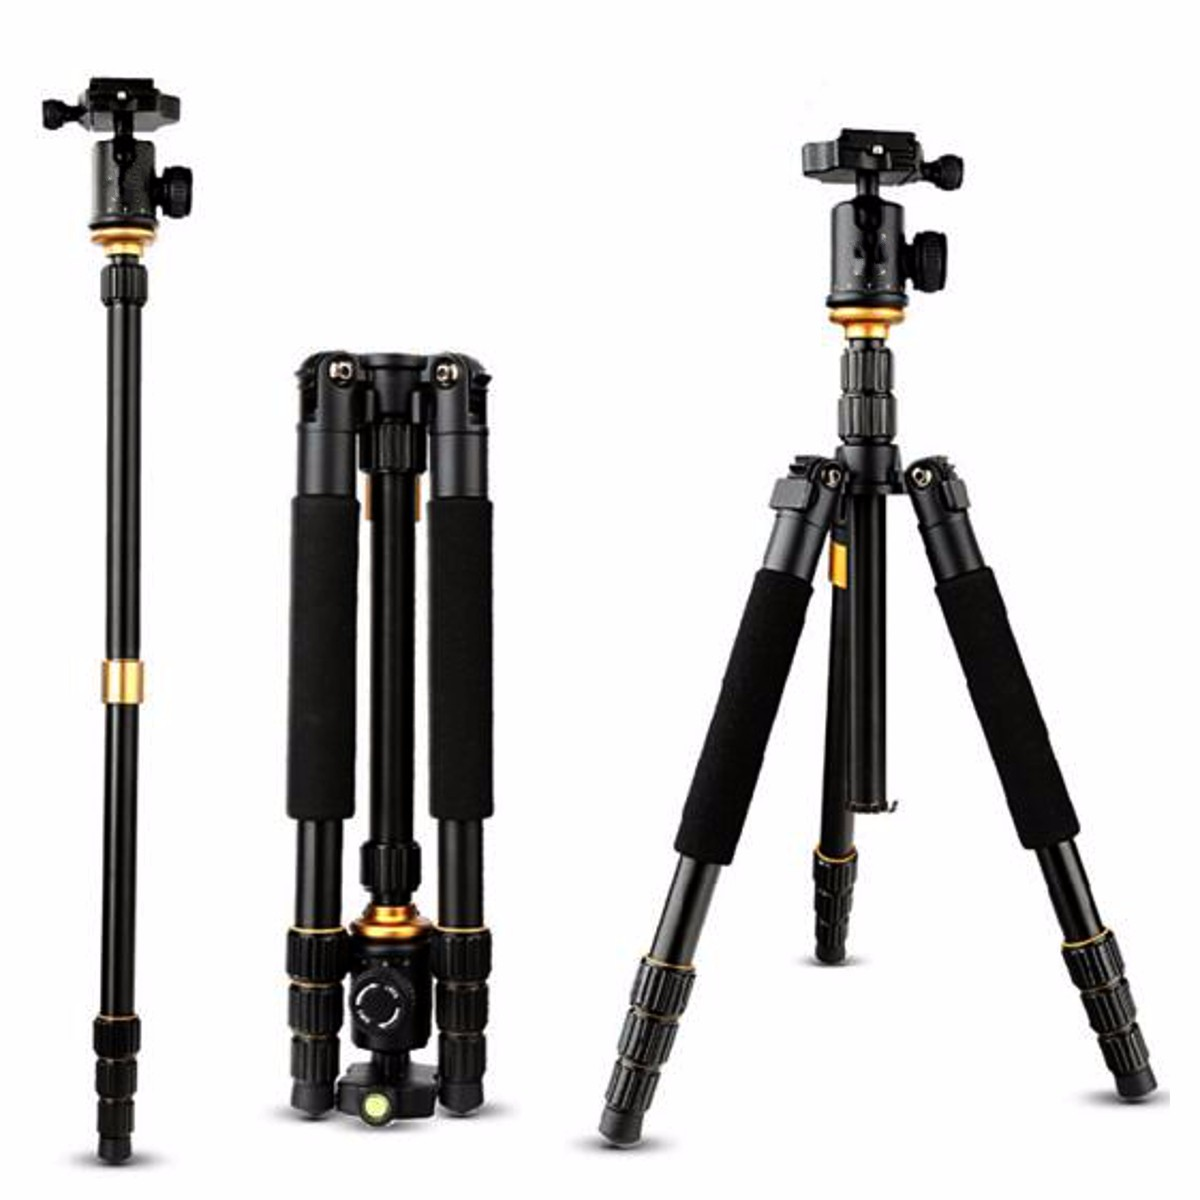 QZSD Q999S Portable Aluminum Tripod Monopod with QZSD-06 Ball Head for DSLR Camera